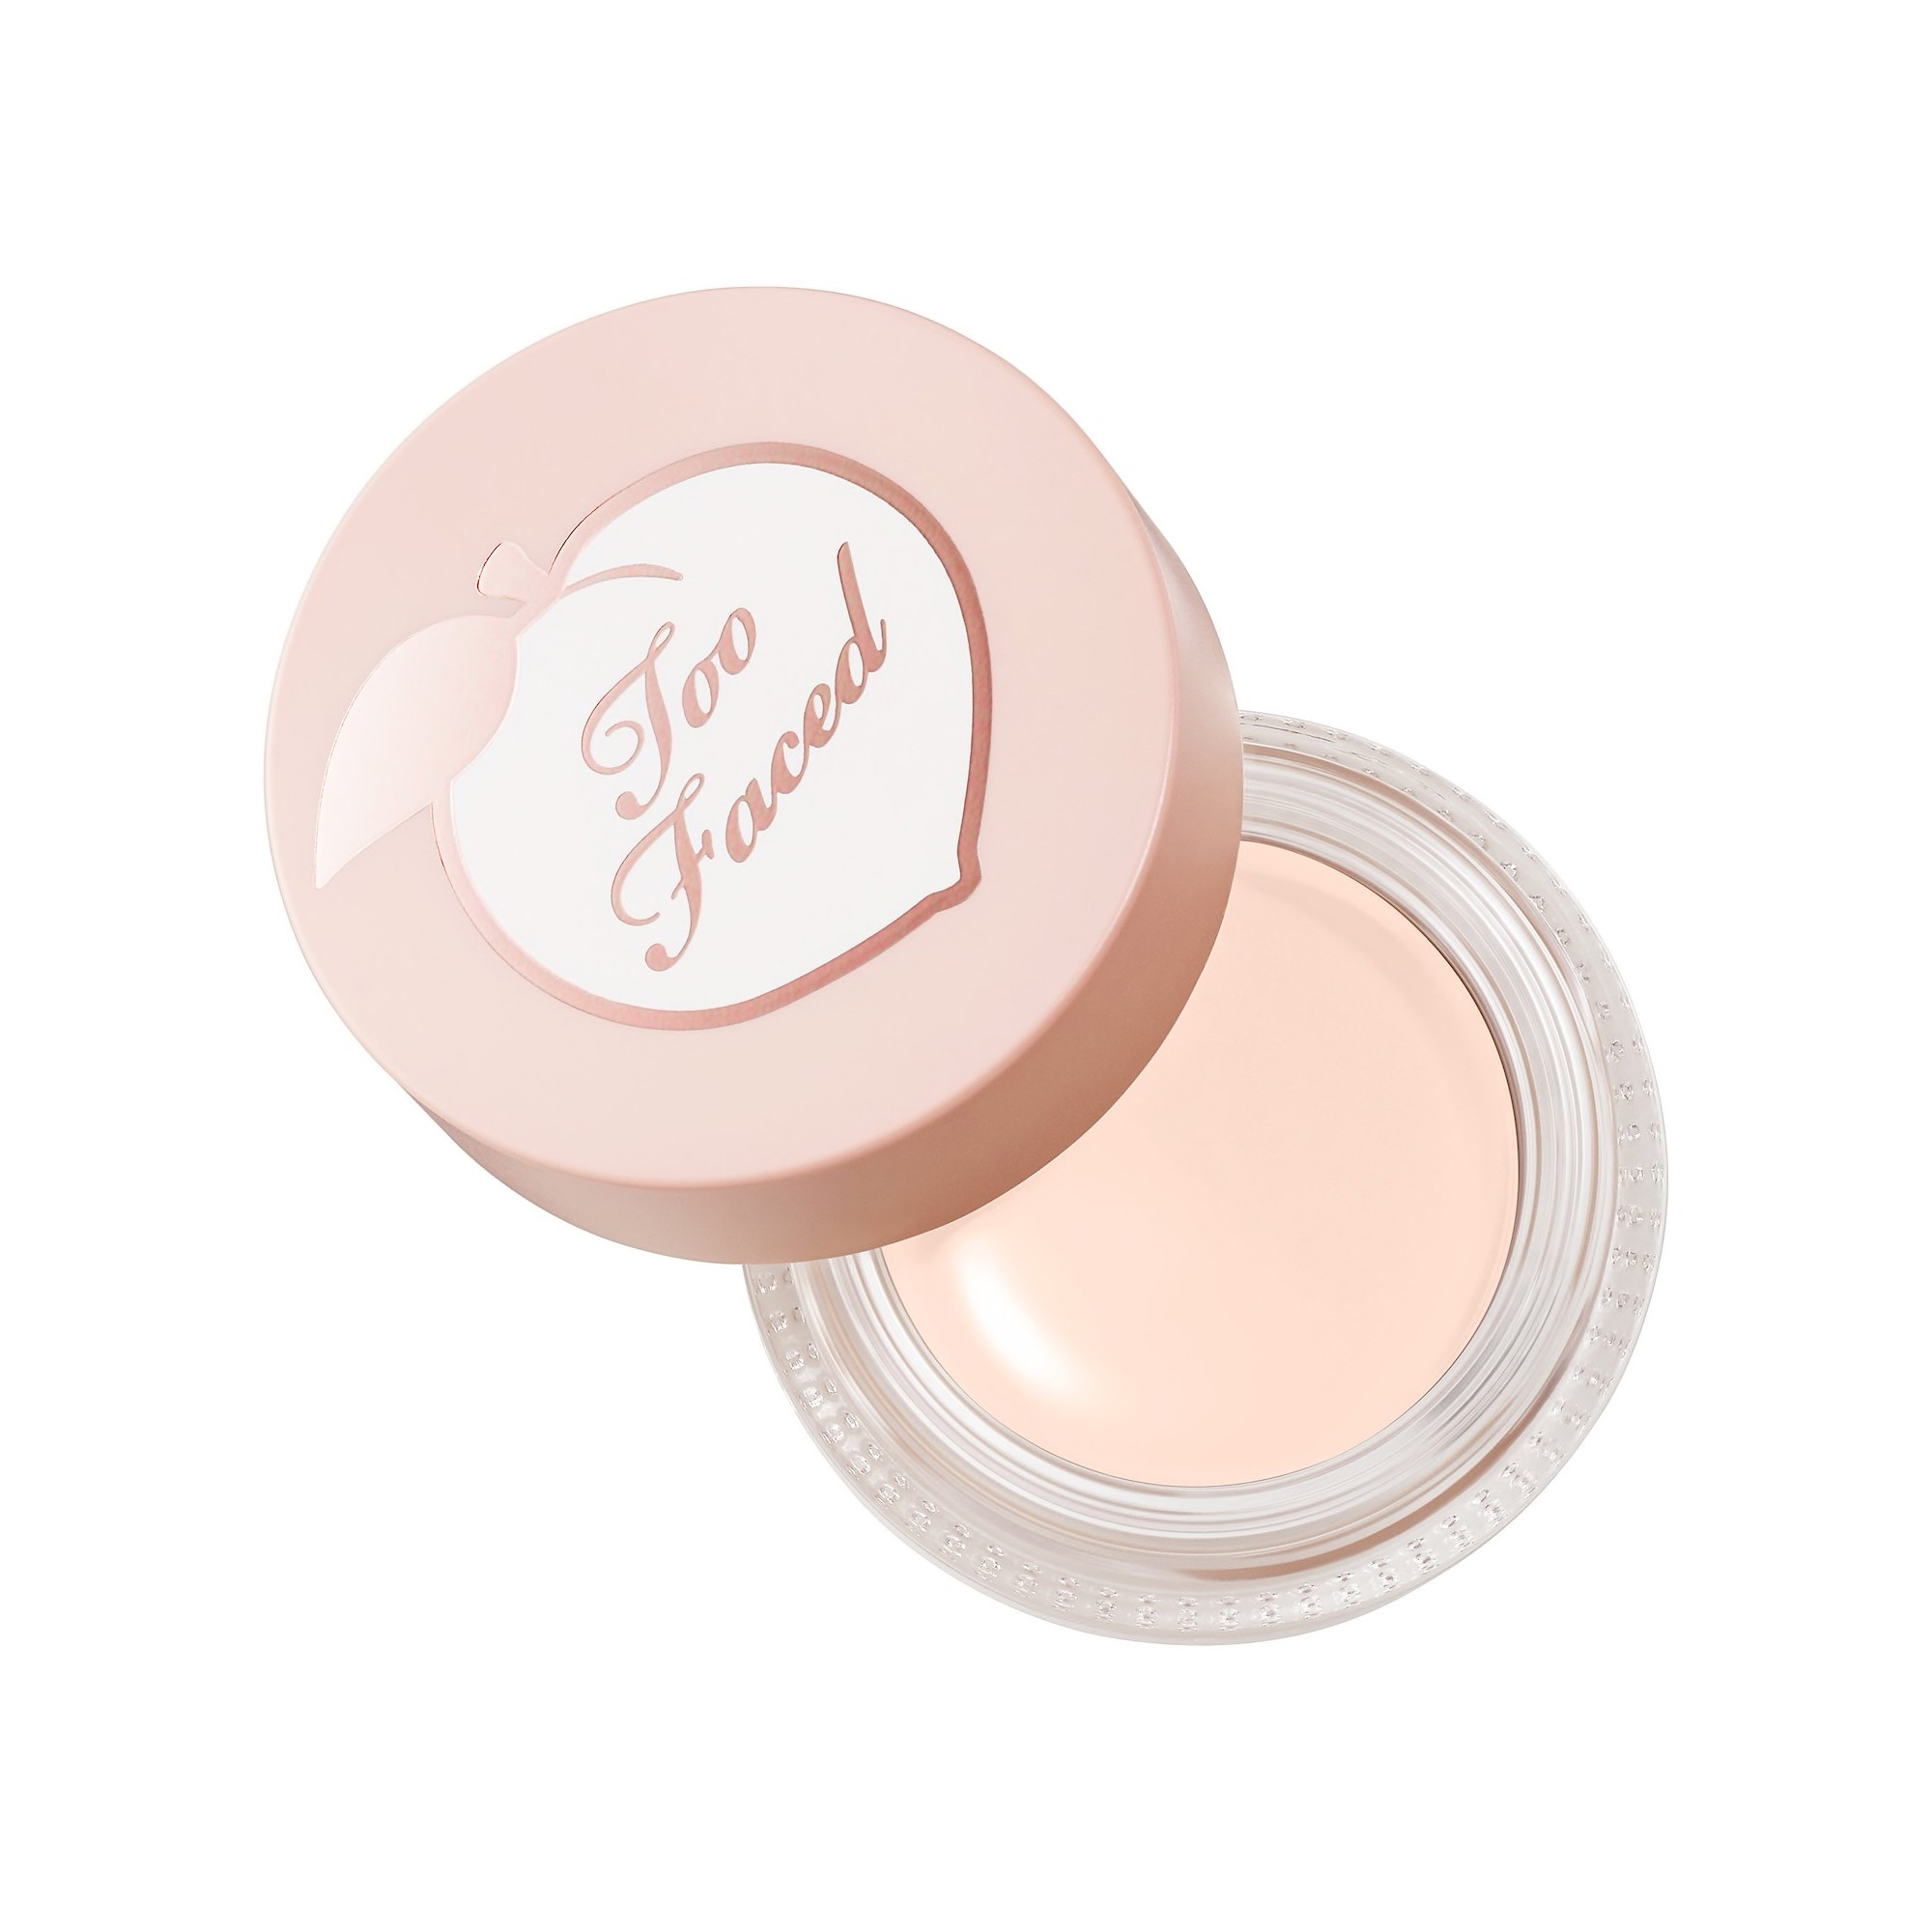 Too Faced Peach Perfect Instant Coverage Concealer Meringue